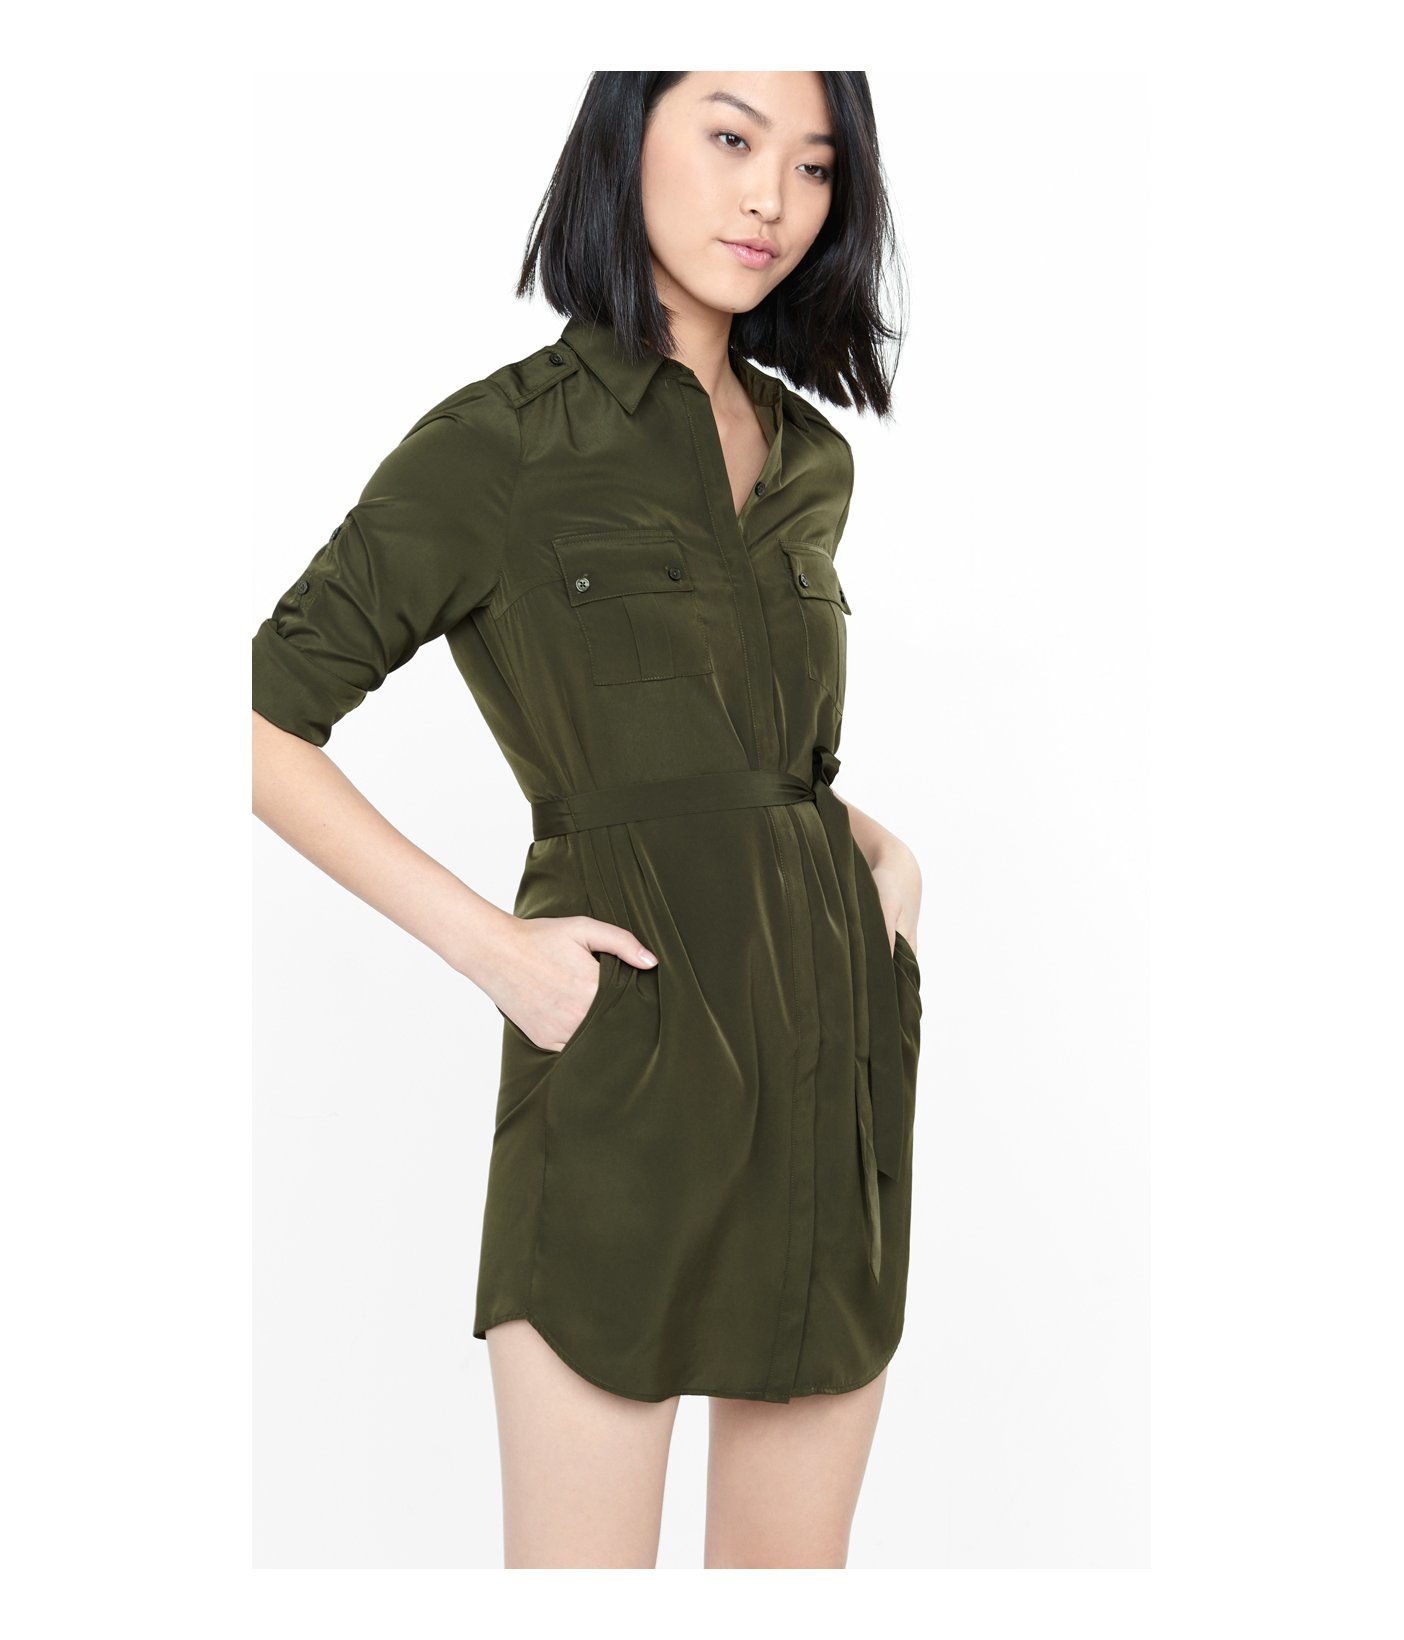 23 popular green dress shirt women � playzoacom